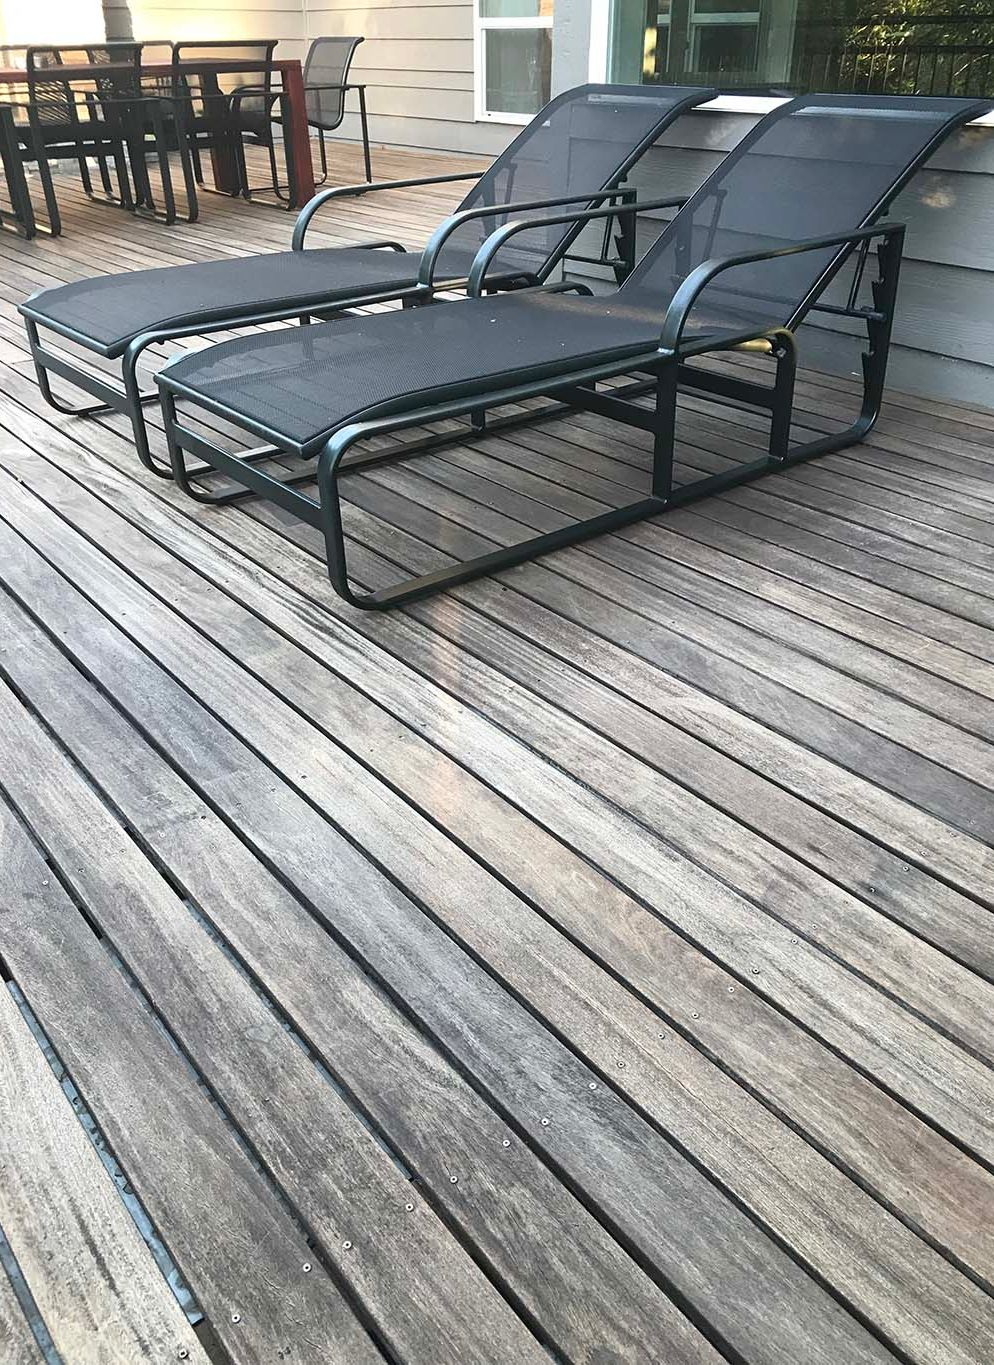 Aged Cumaru Brazilian Teak Deck Can Be Brought Back To Life